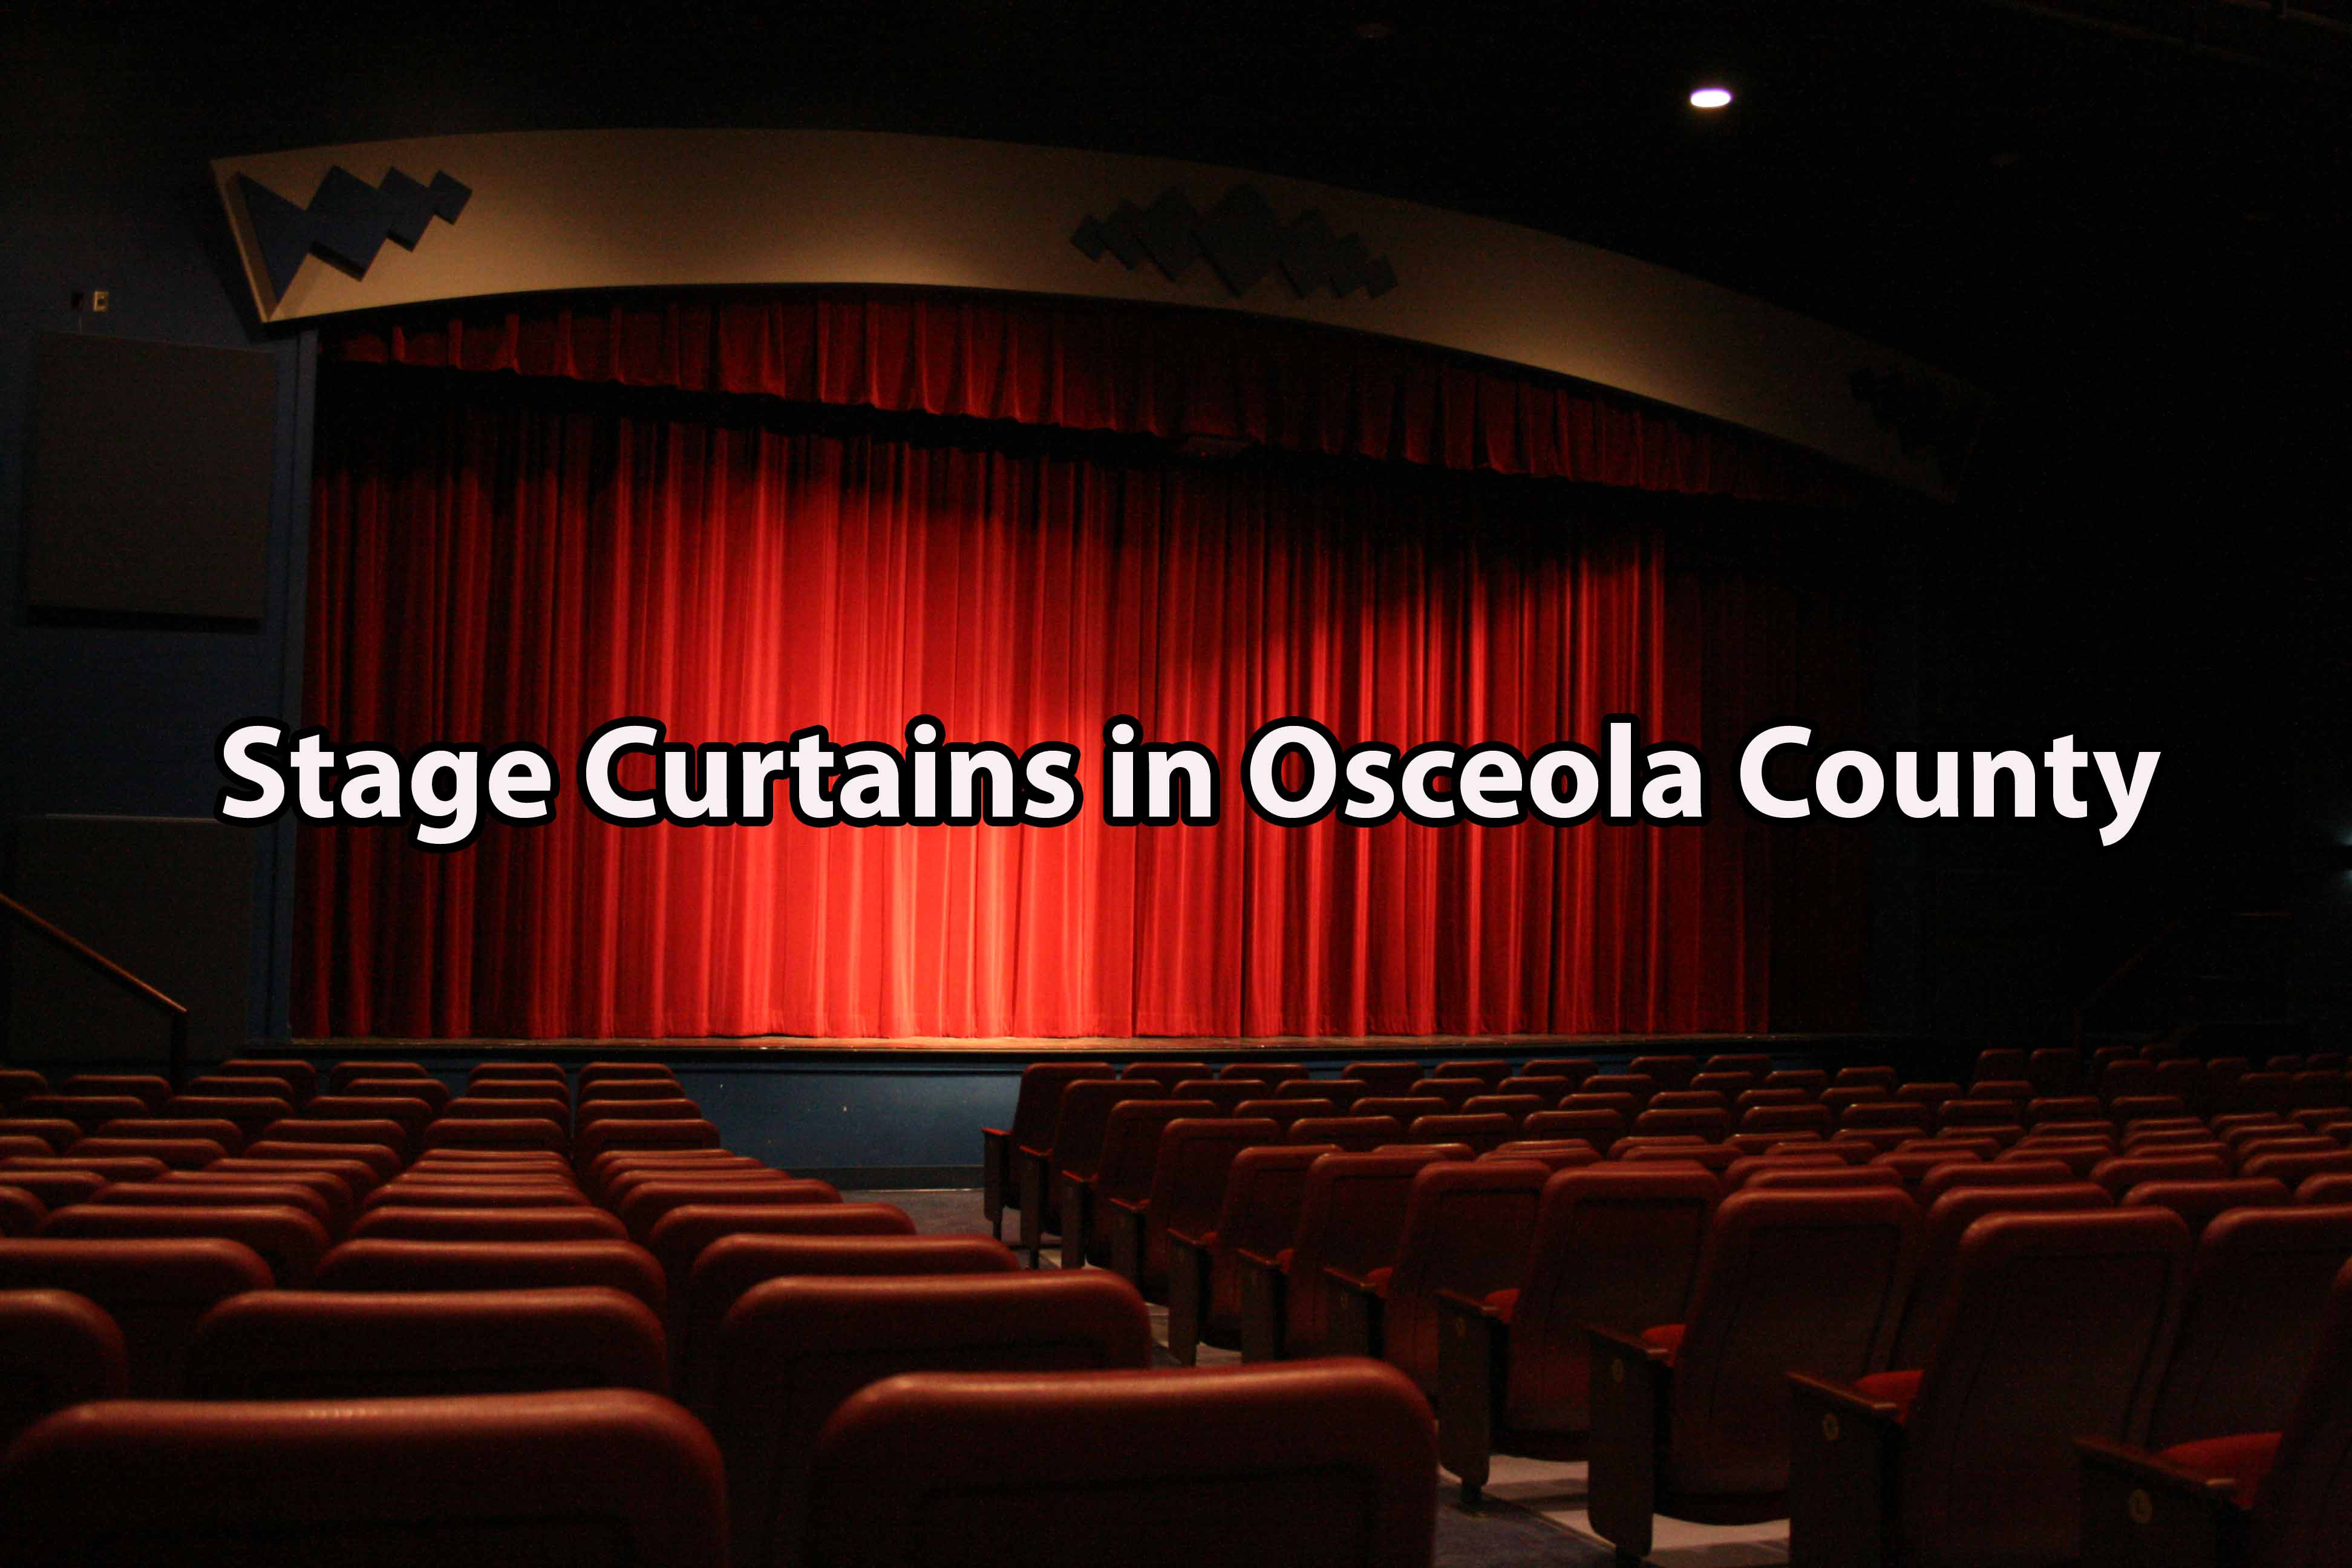 Stage Curtains in Osceola County